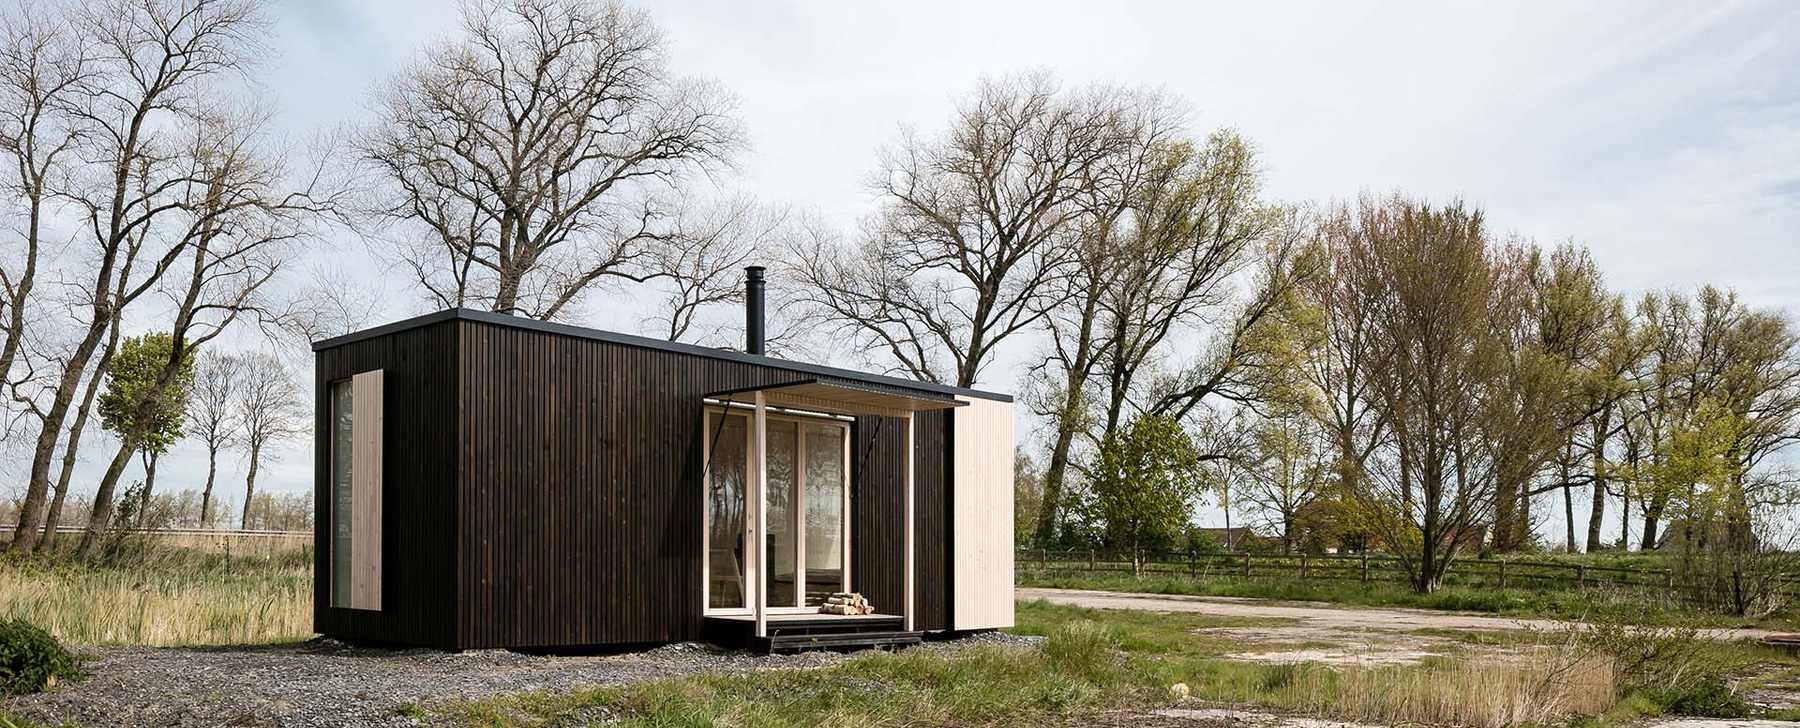 ARK shelter is a sustainable, mobile prefab home for any location, and it's cost effective